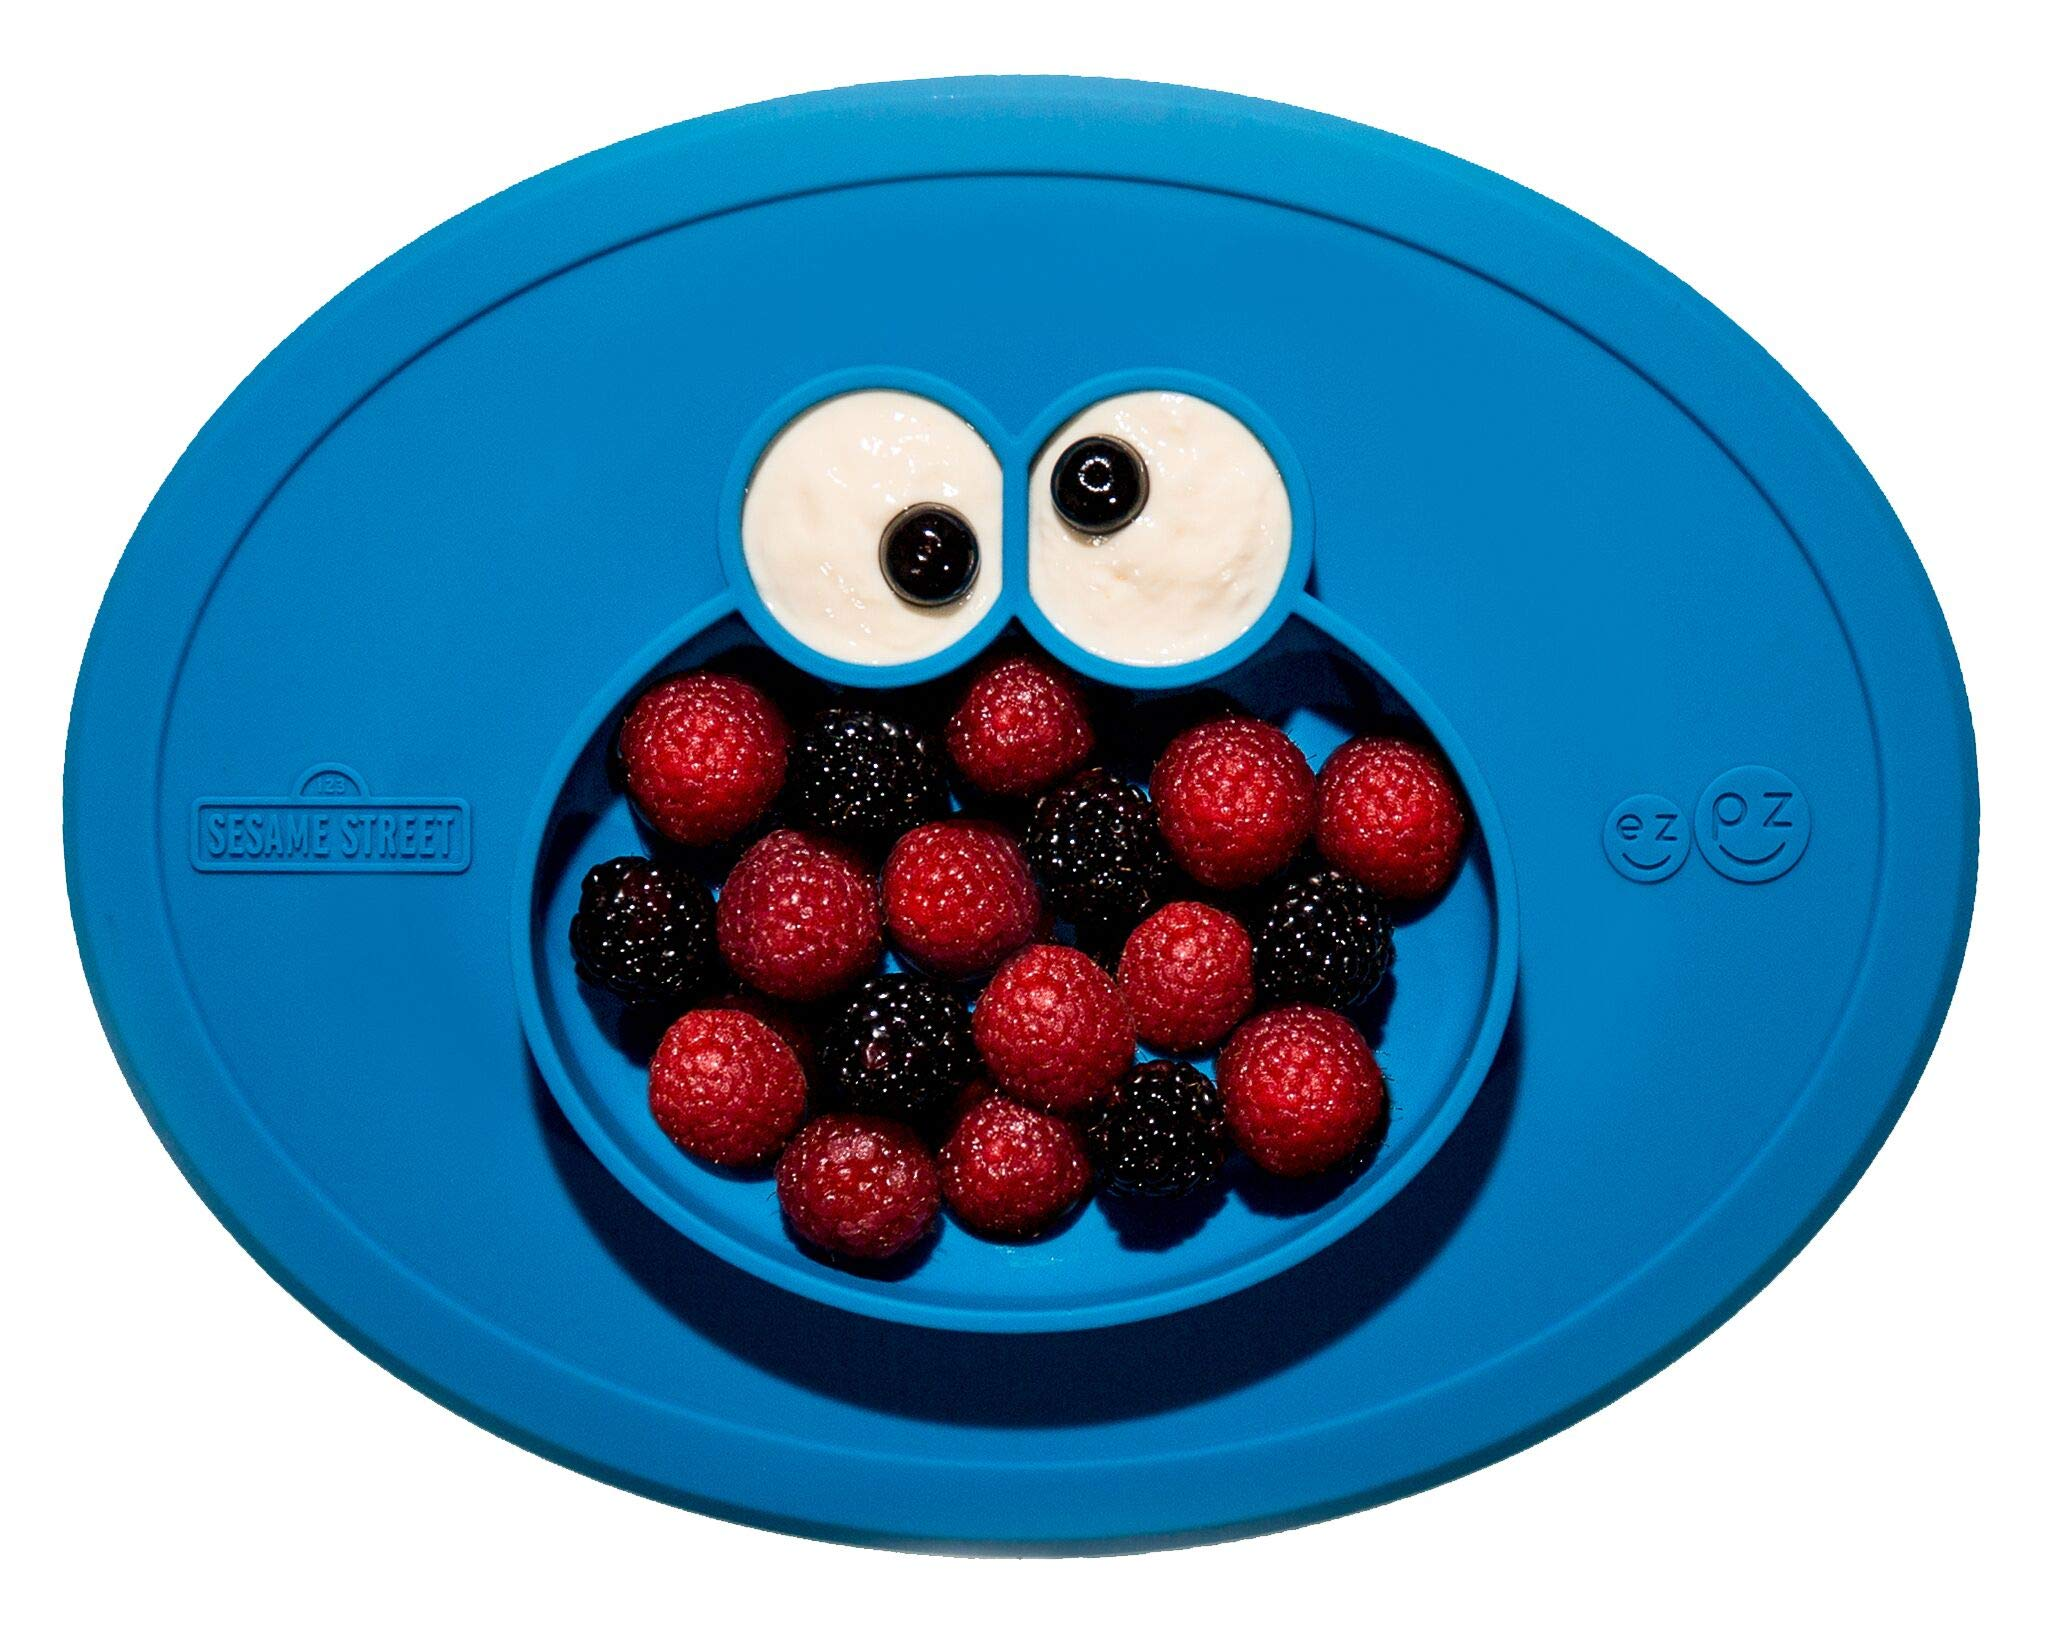 ezpz Sesame Street Cookie Monster Mat - One-Piece Silicone placemat + Plate (Blue) by ezpz